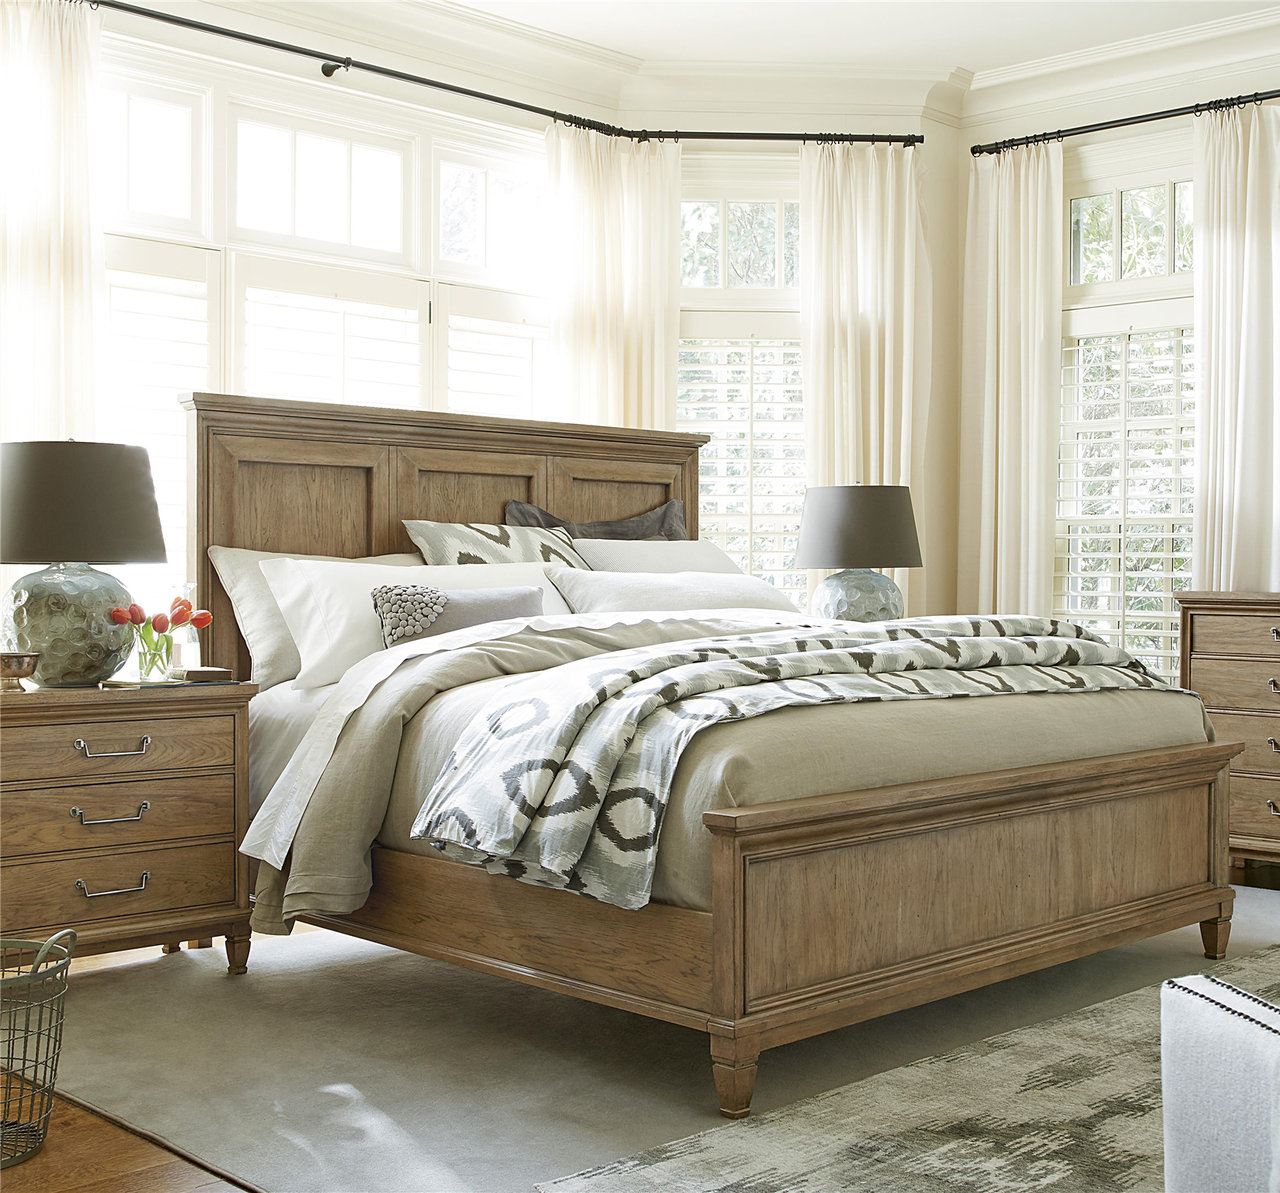 Gorgeous Bedroom Furniture: French Modern Hickory Wood Queen Panel Bed Frame